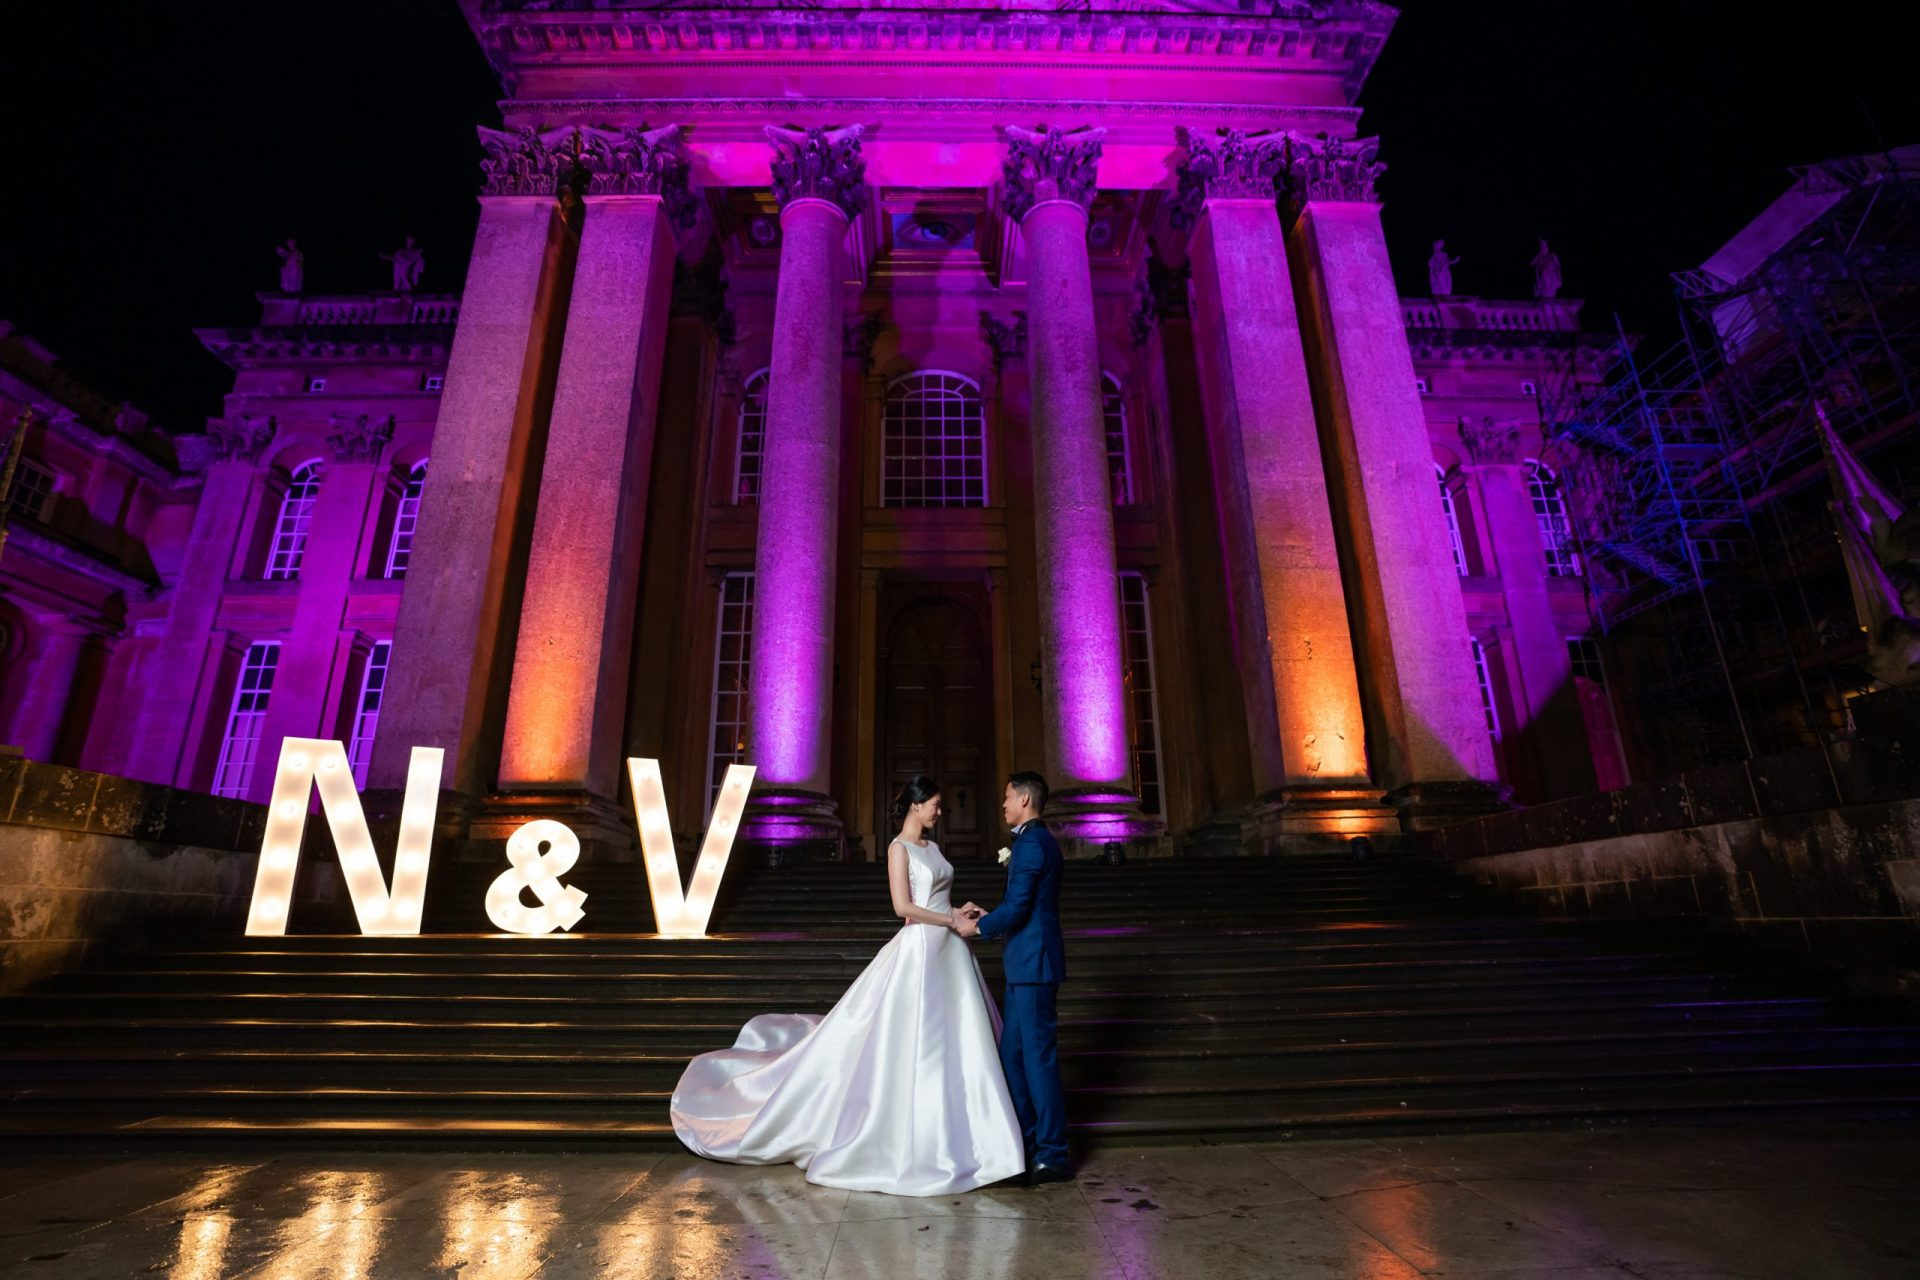 Bride and groom standing in front of Blenheim Palace lit up in purple